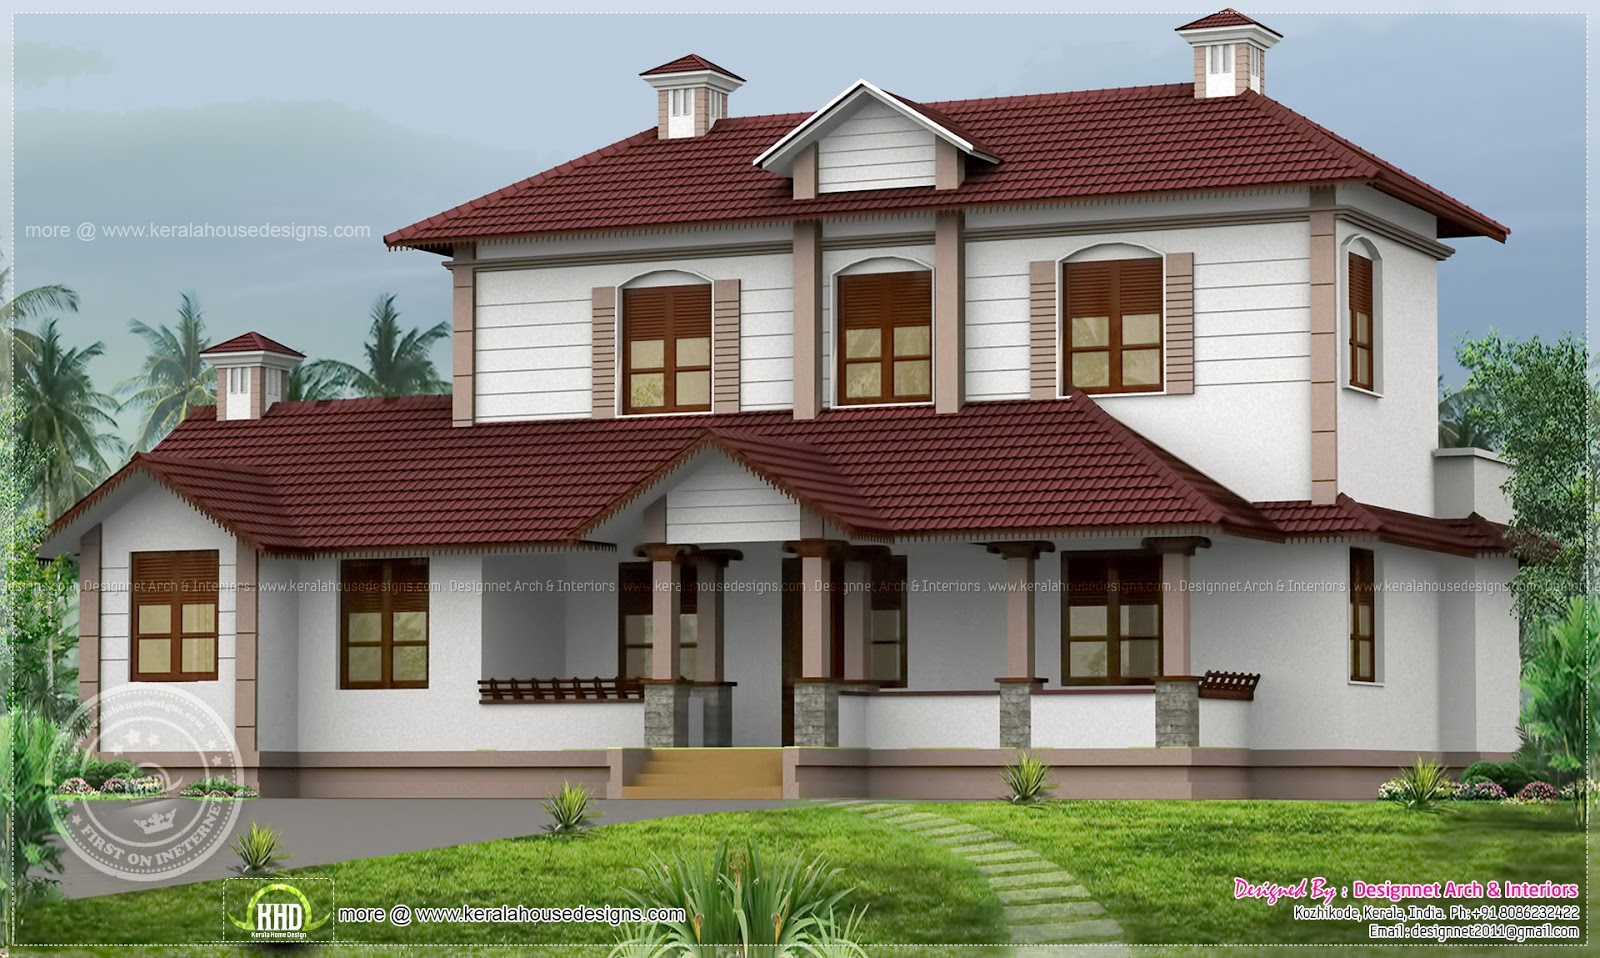 Traditional Japanese House Floor Plans Renovation Model Of An Old House Kerala Home Design And